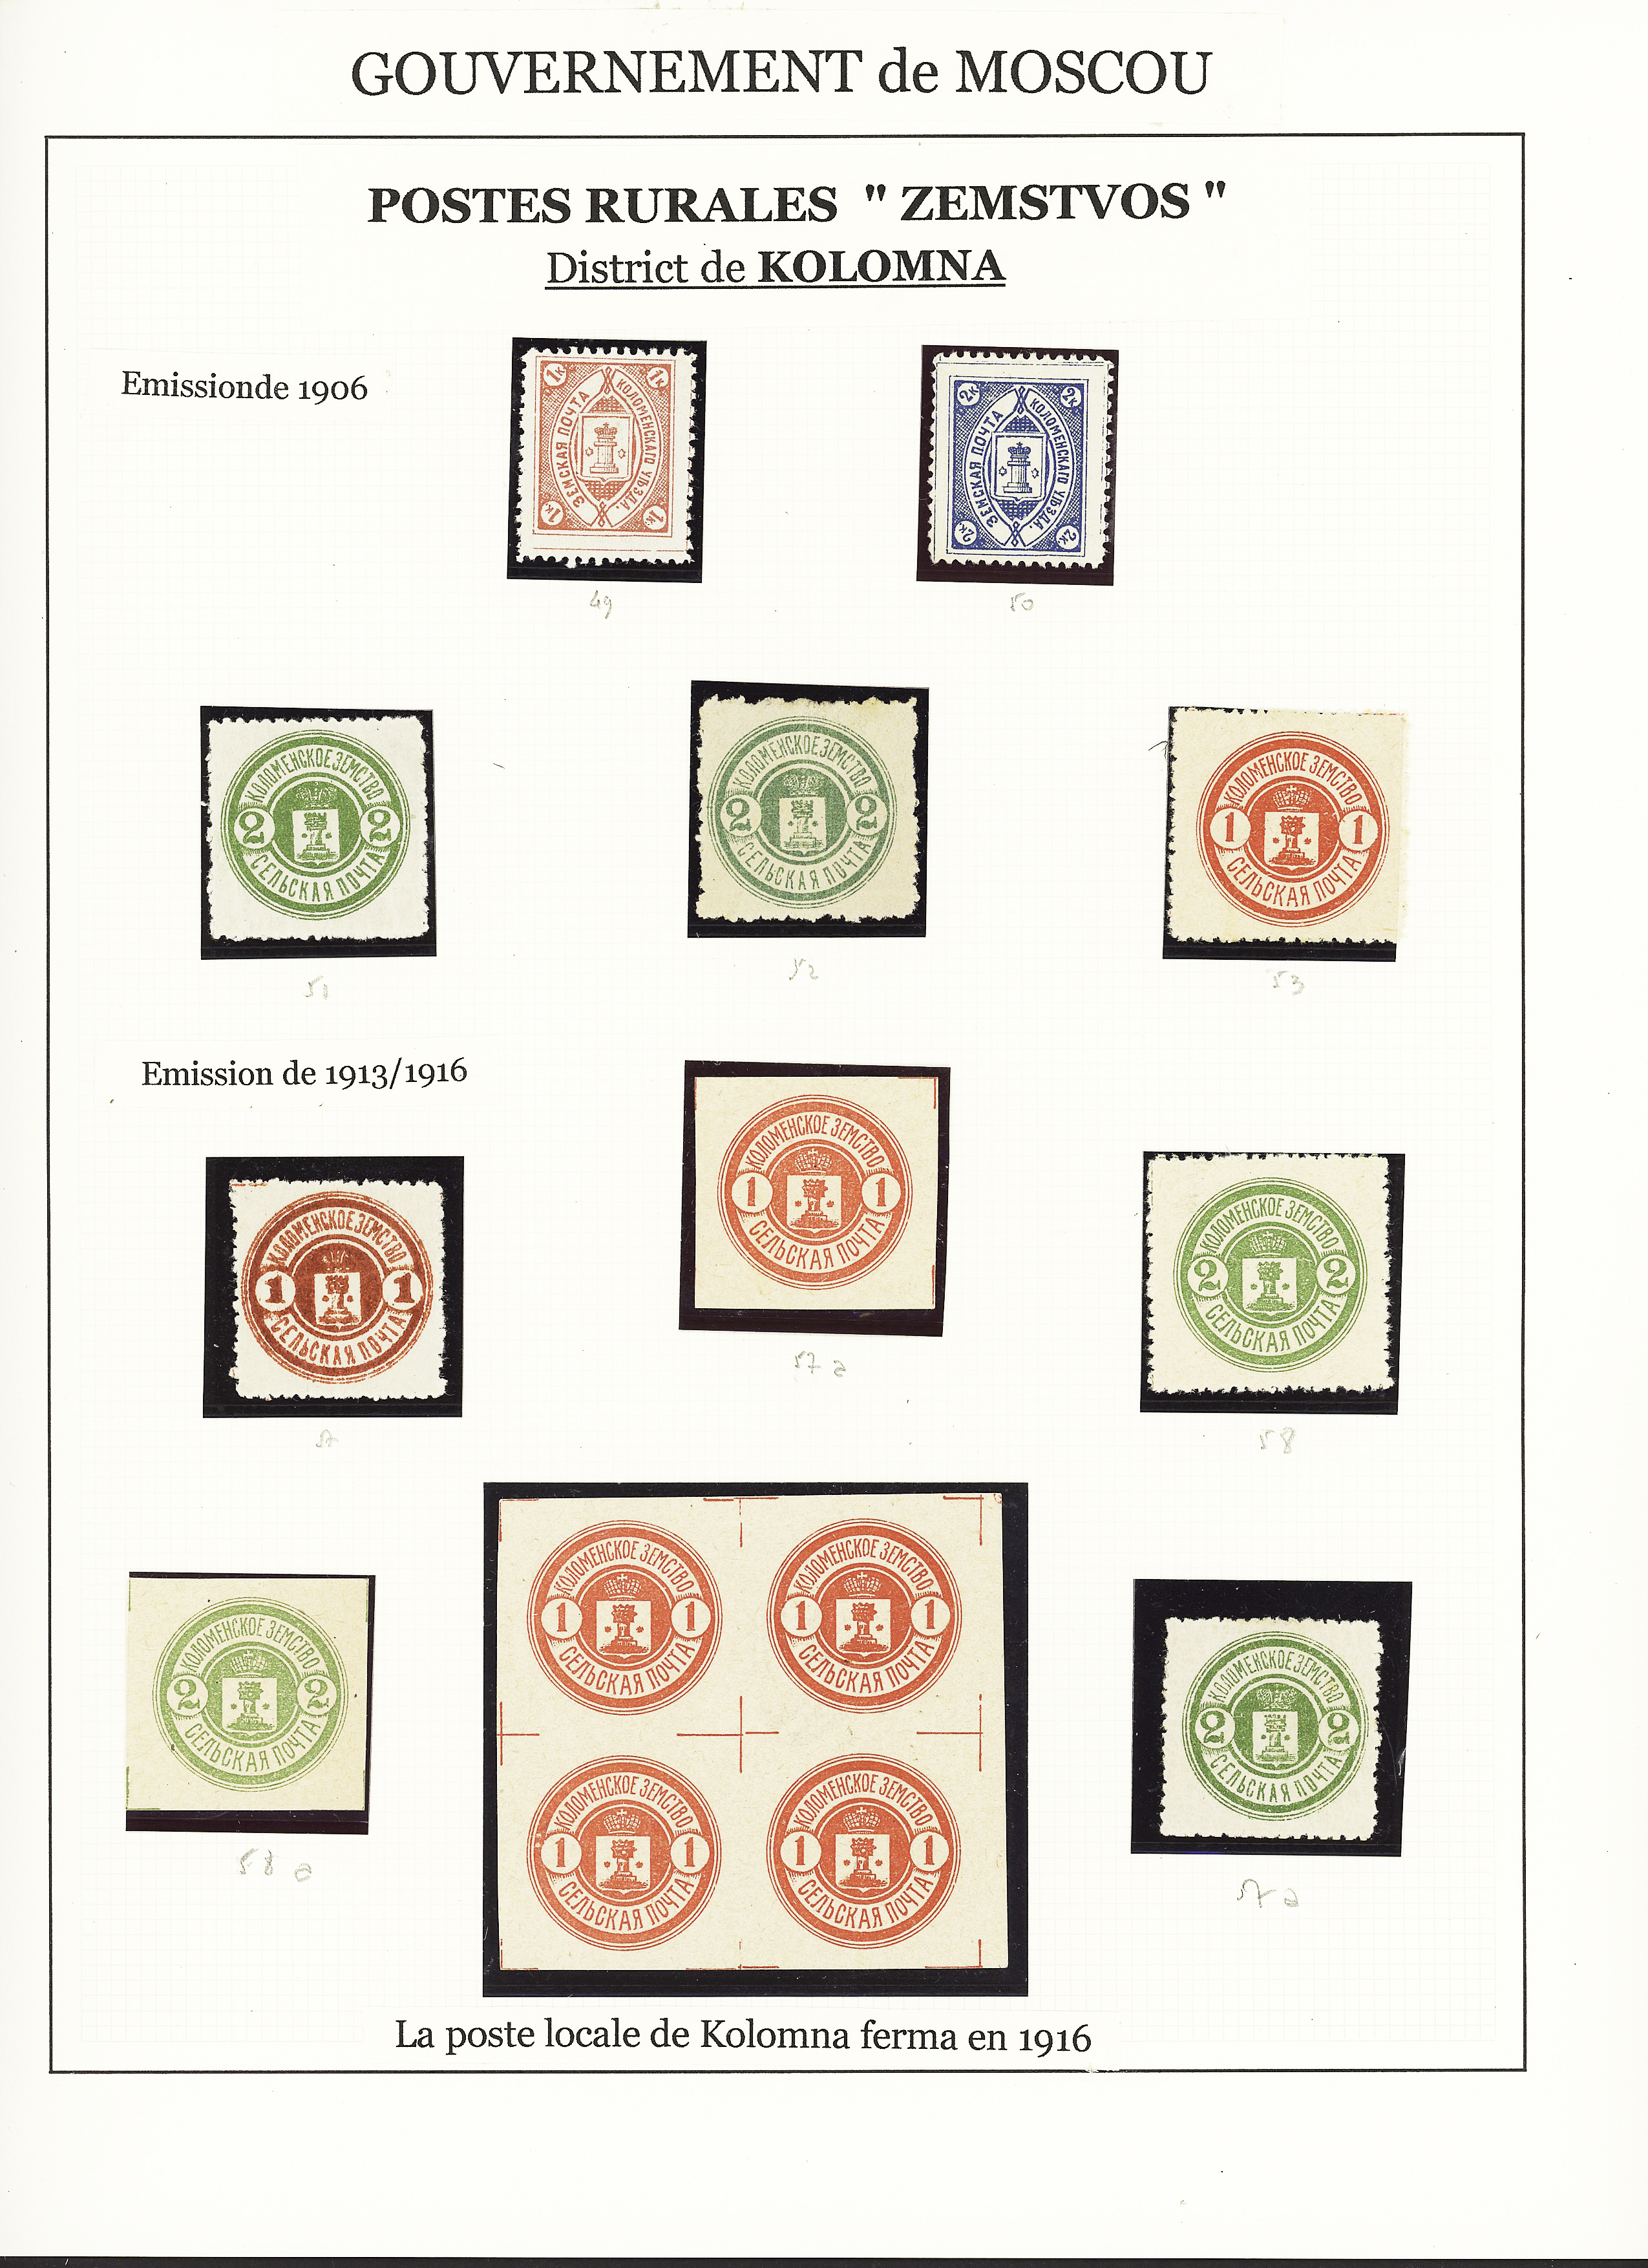 Lot 427 - Eastern Europe » RUSSIA - ZEMSTVOS » Bronnitzky (Moscow Government)  -  Le Timbre Classique SA SALE ON OFFERS N ° 37 PARIS